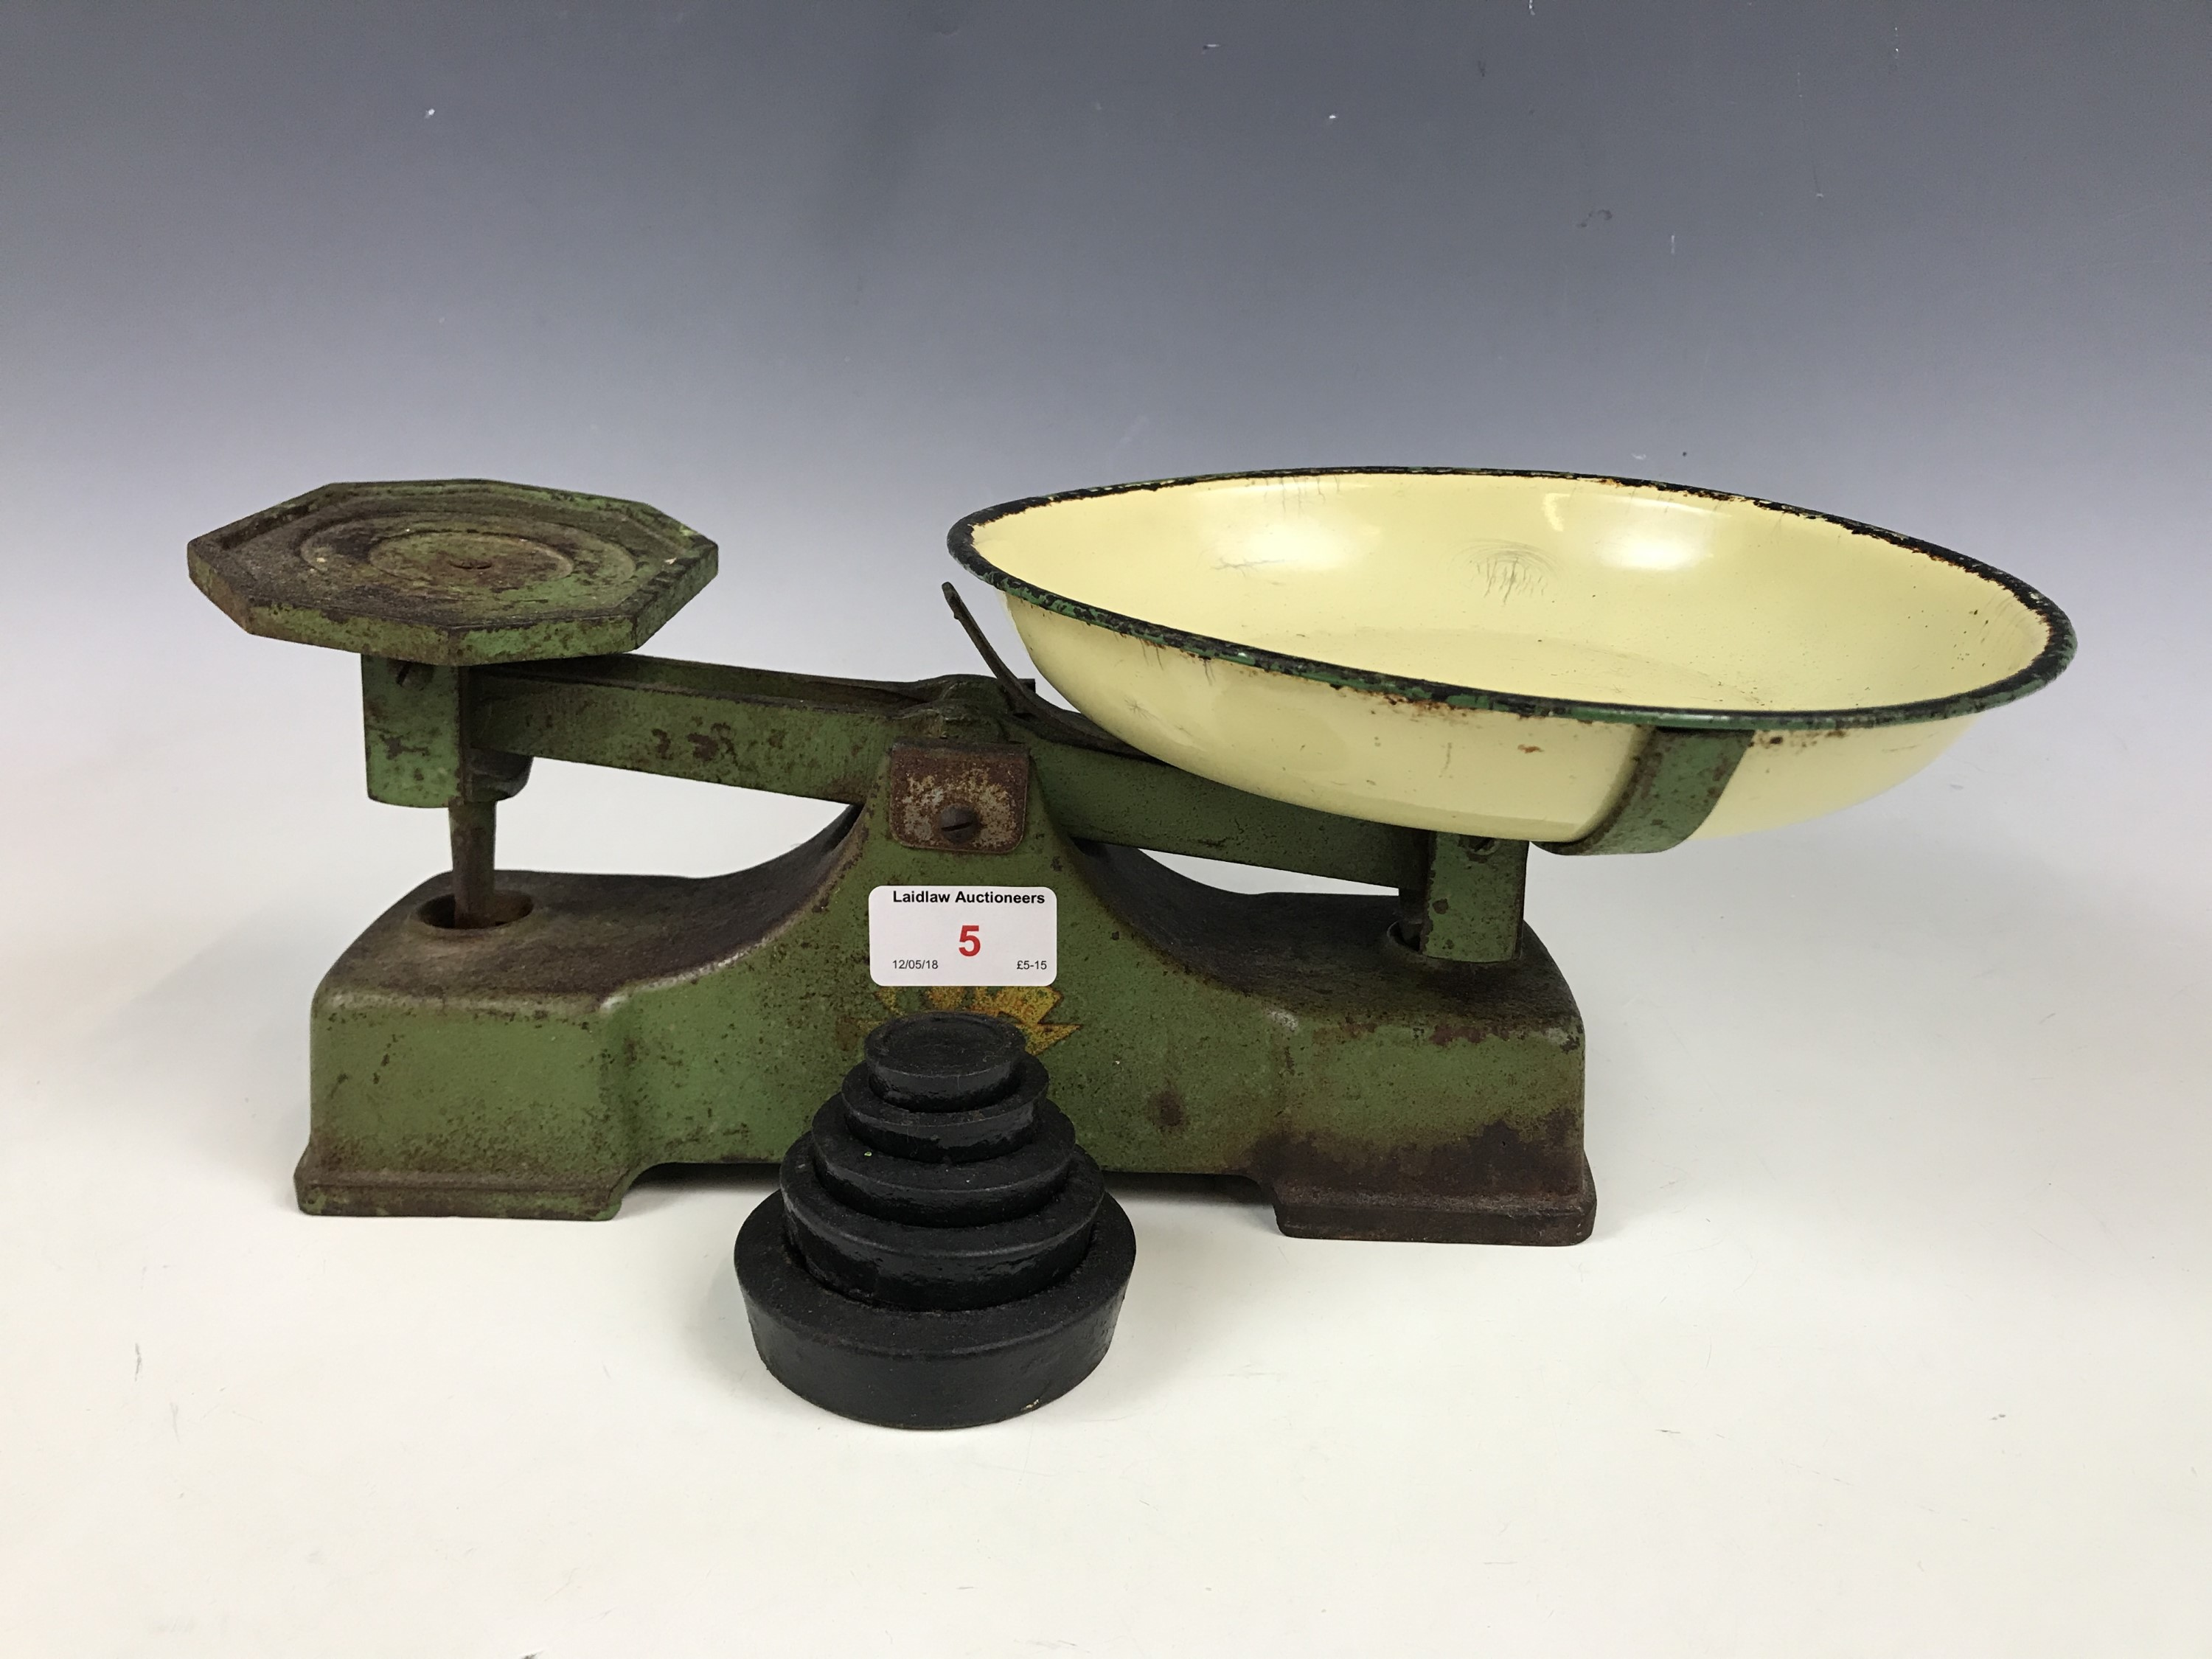 Lot 5 - A set of vintage kitchen scales with weights